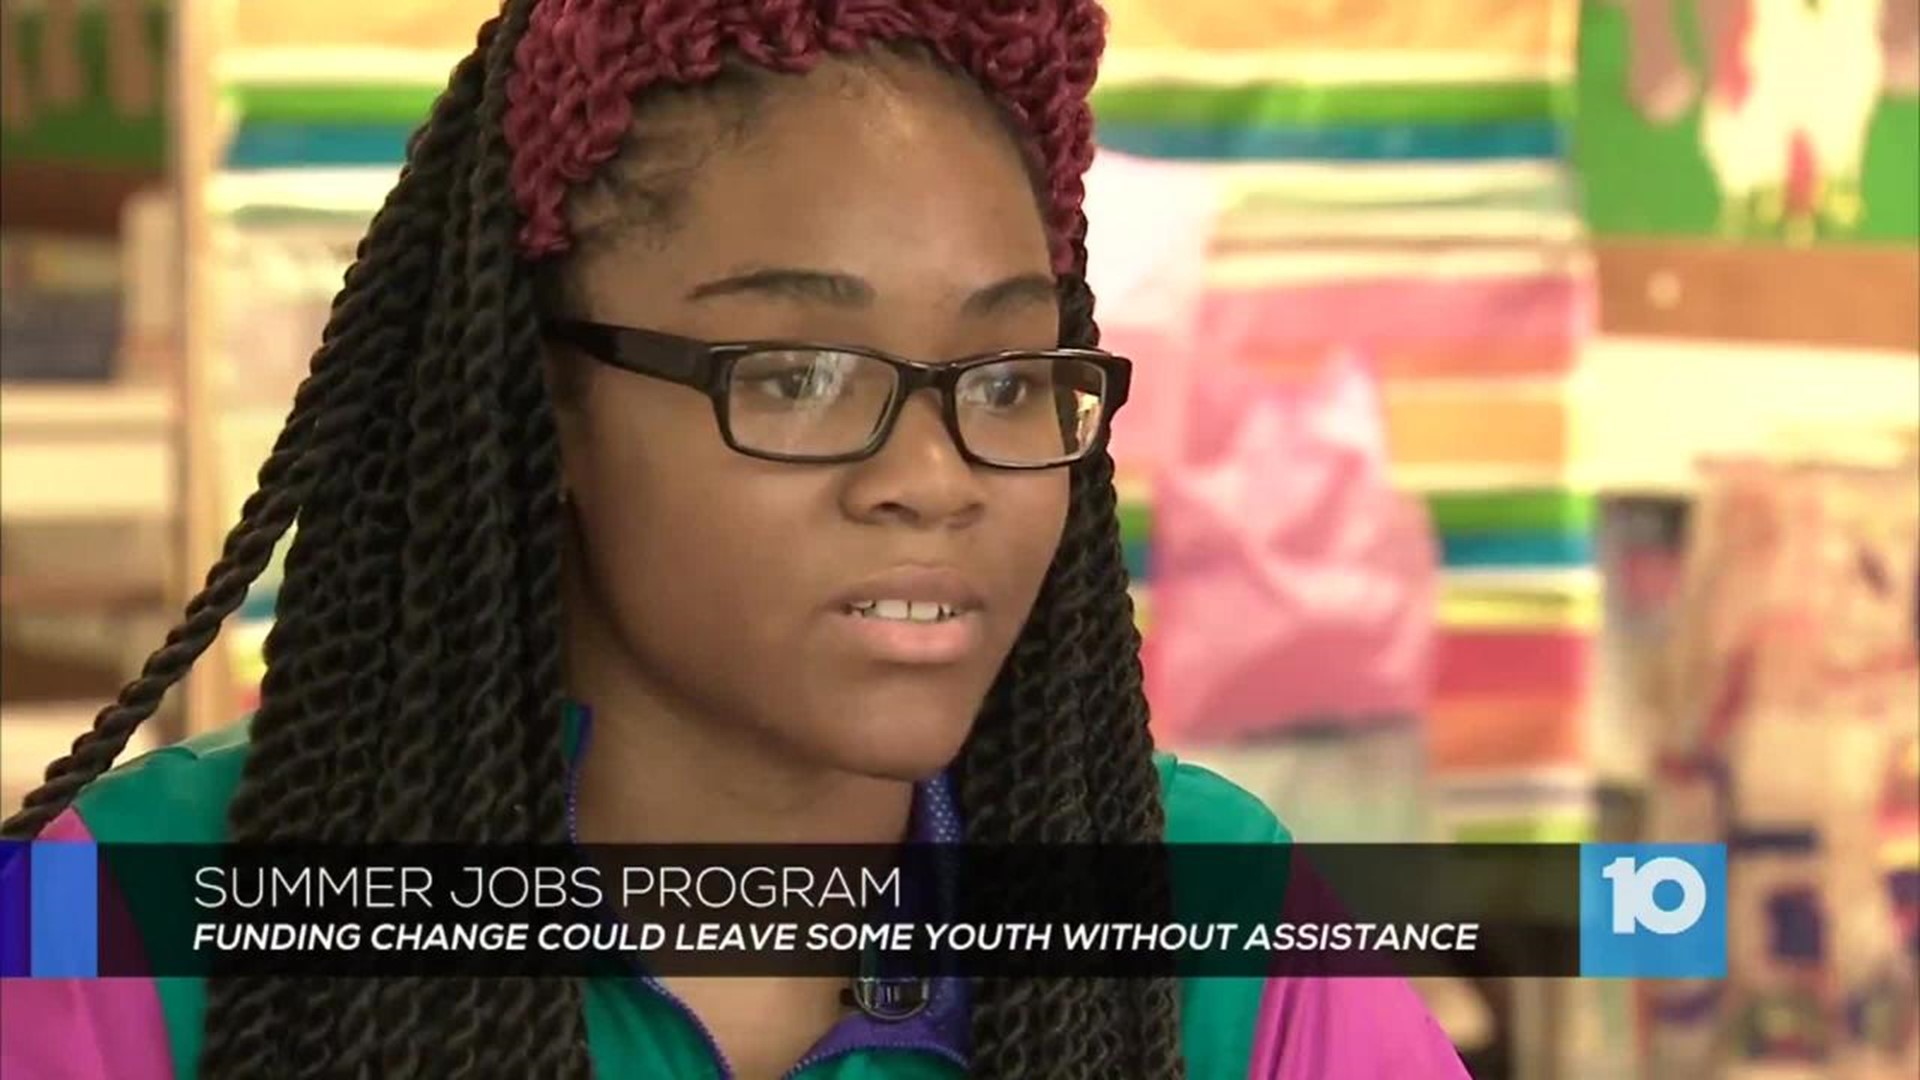 State S Summer Jobs Funding Shift Comes At Cost To Local Programs Youth 10tv Com